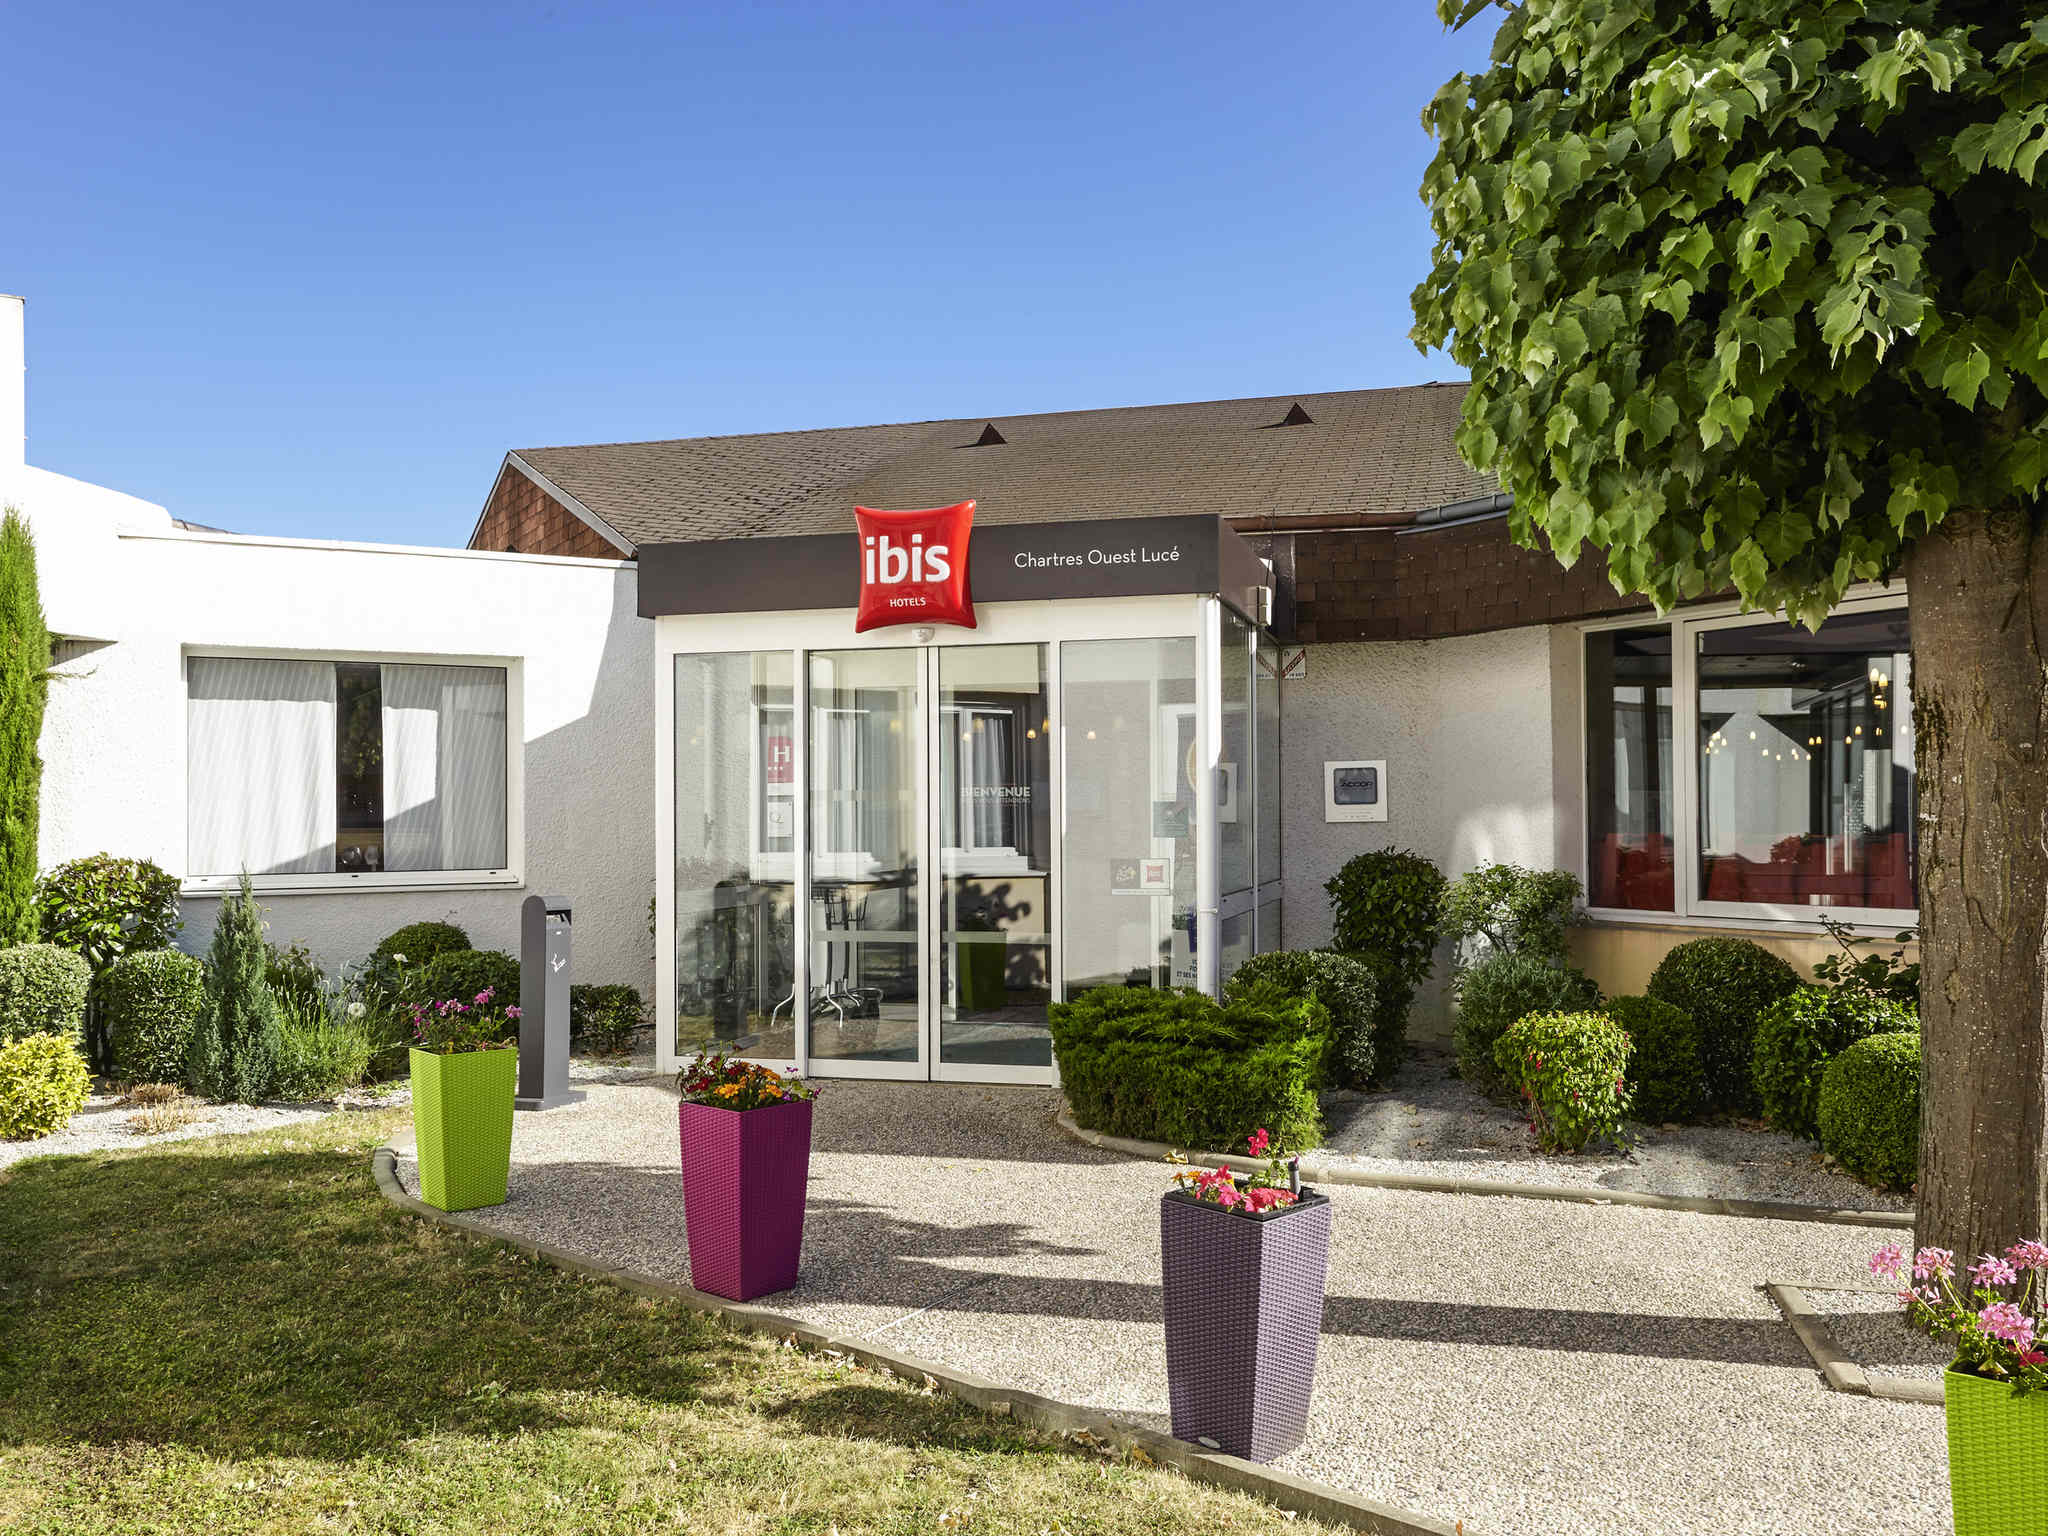 Otel – ibis Chartres Ouest Luce